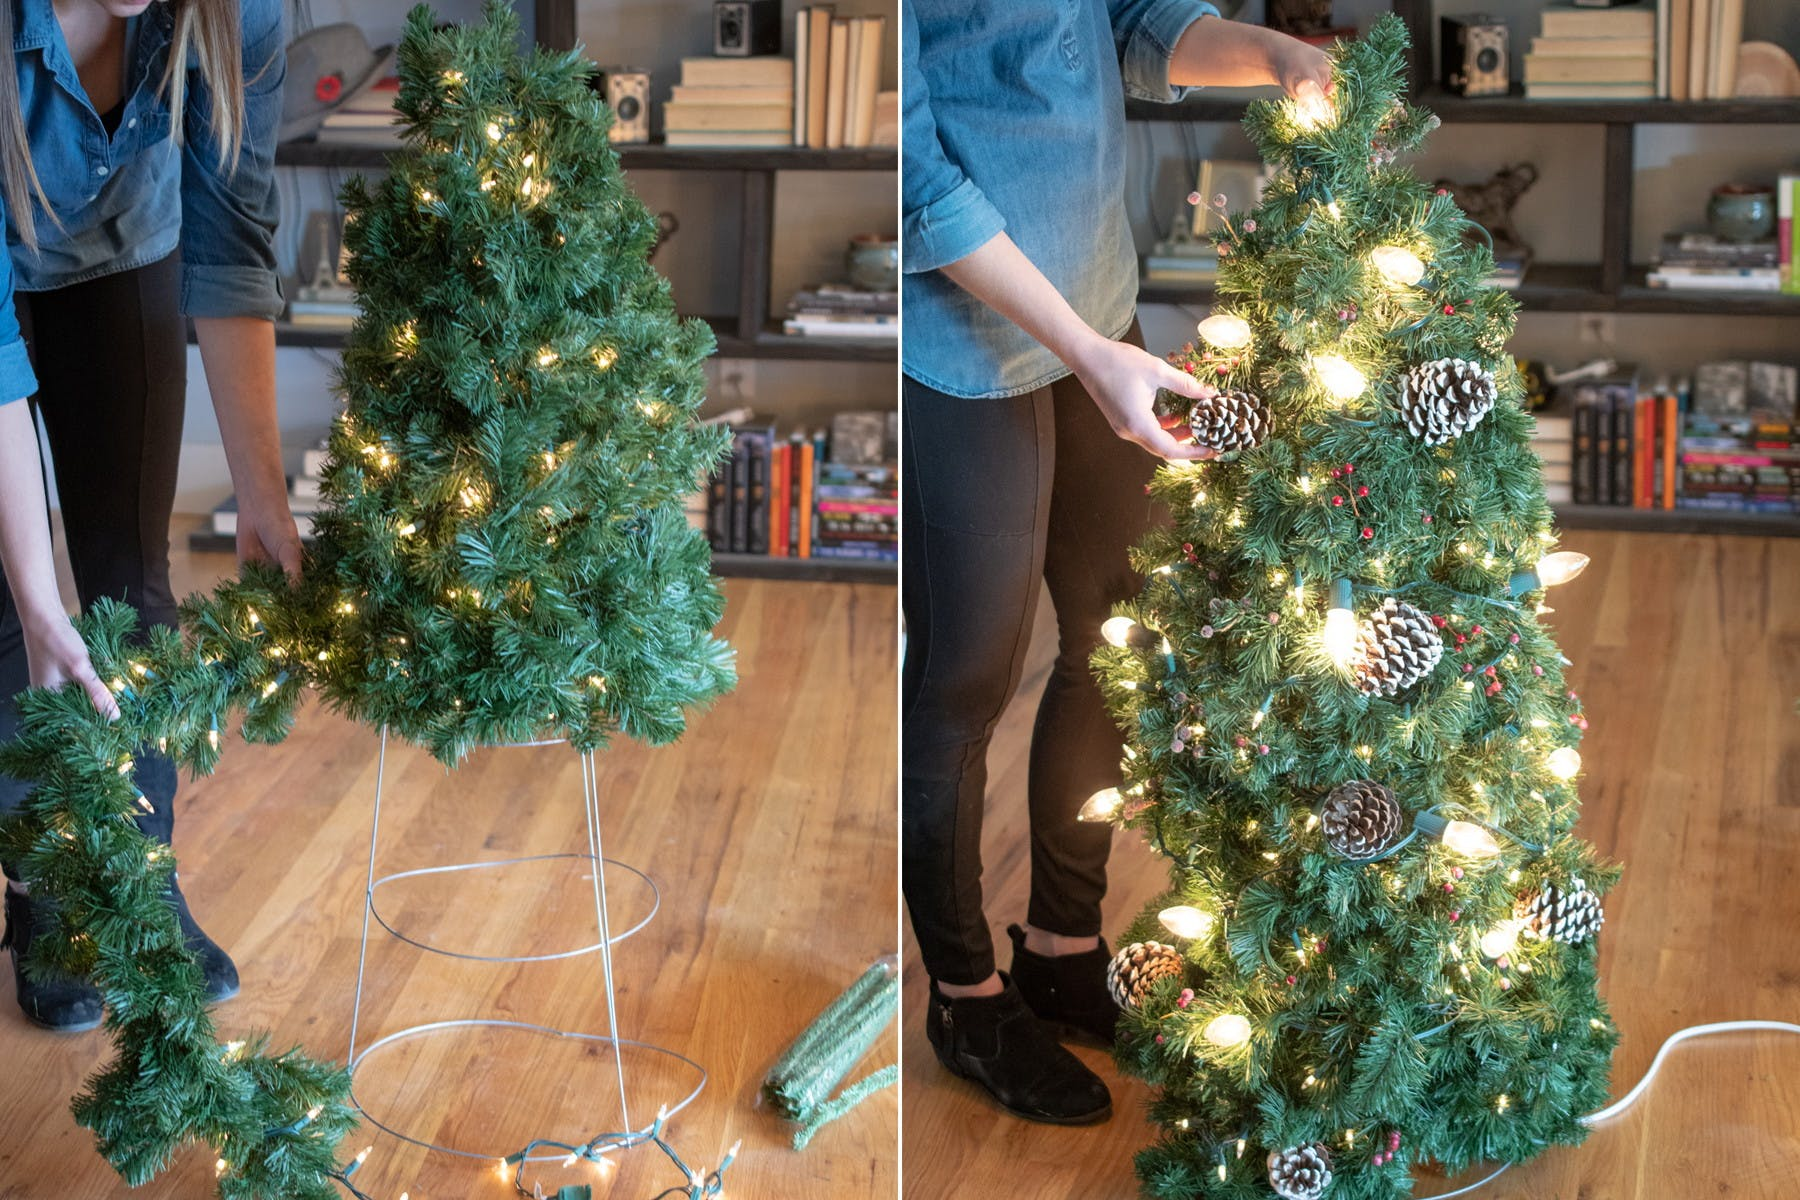 53 Ingenious Christmas Decorating Hacks For Your Home The Krazy Coupon Lady